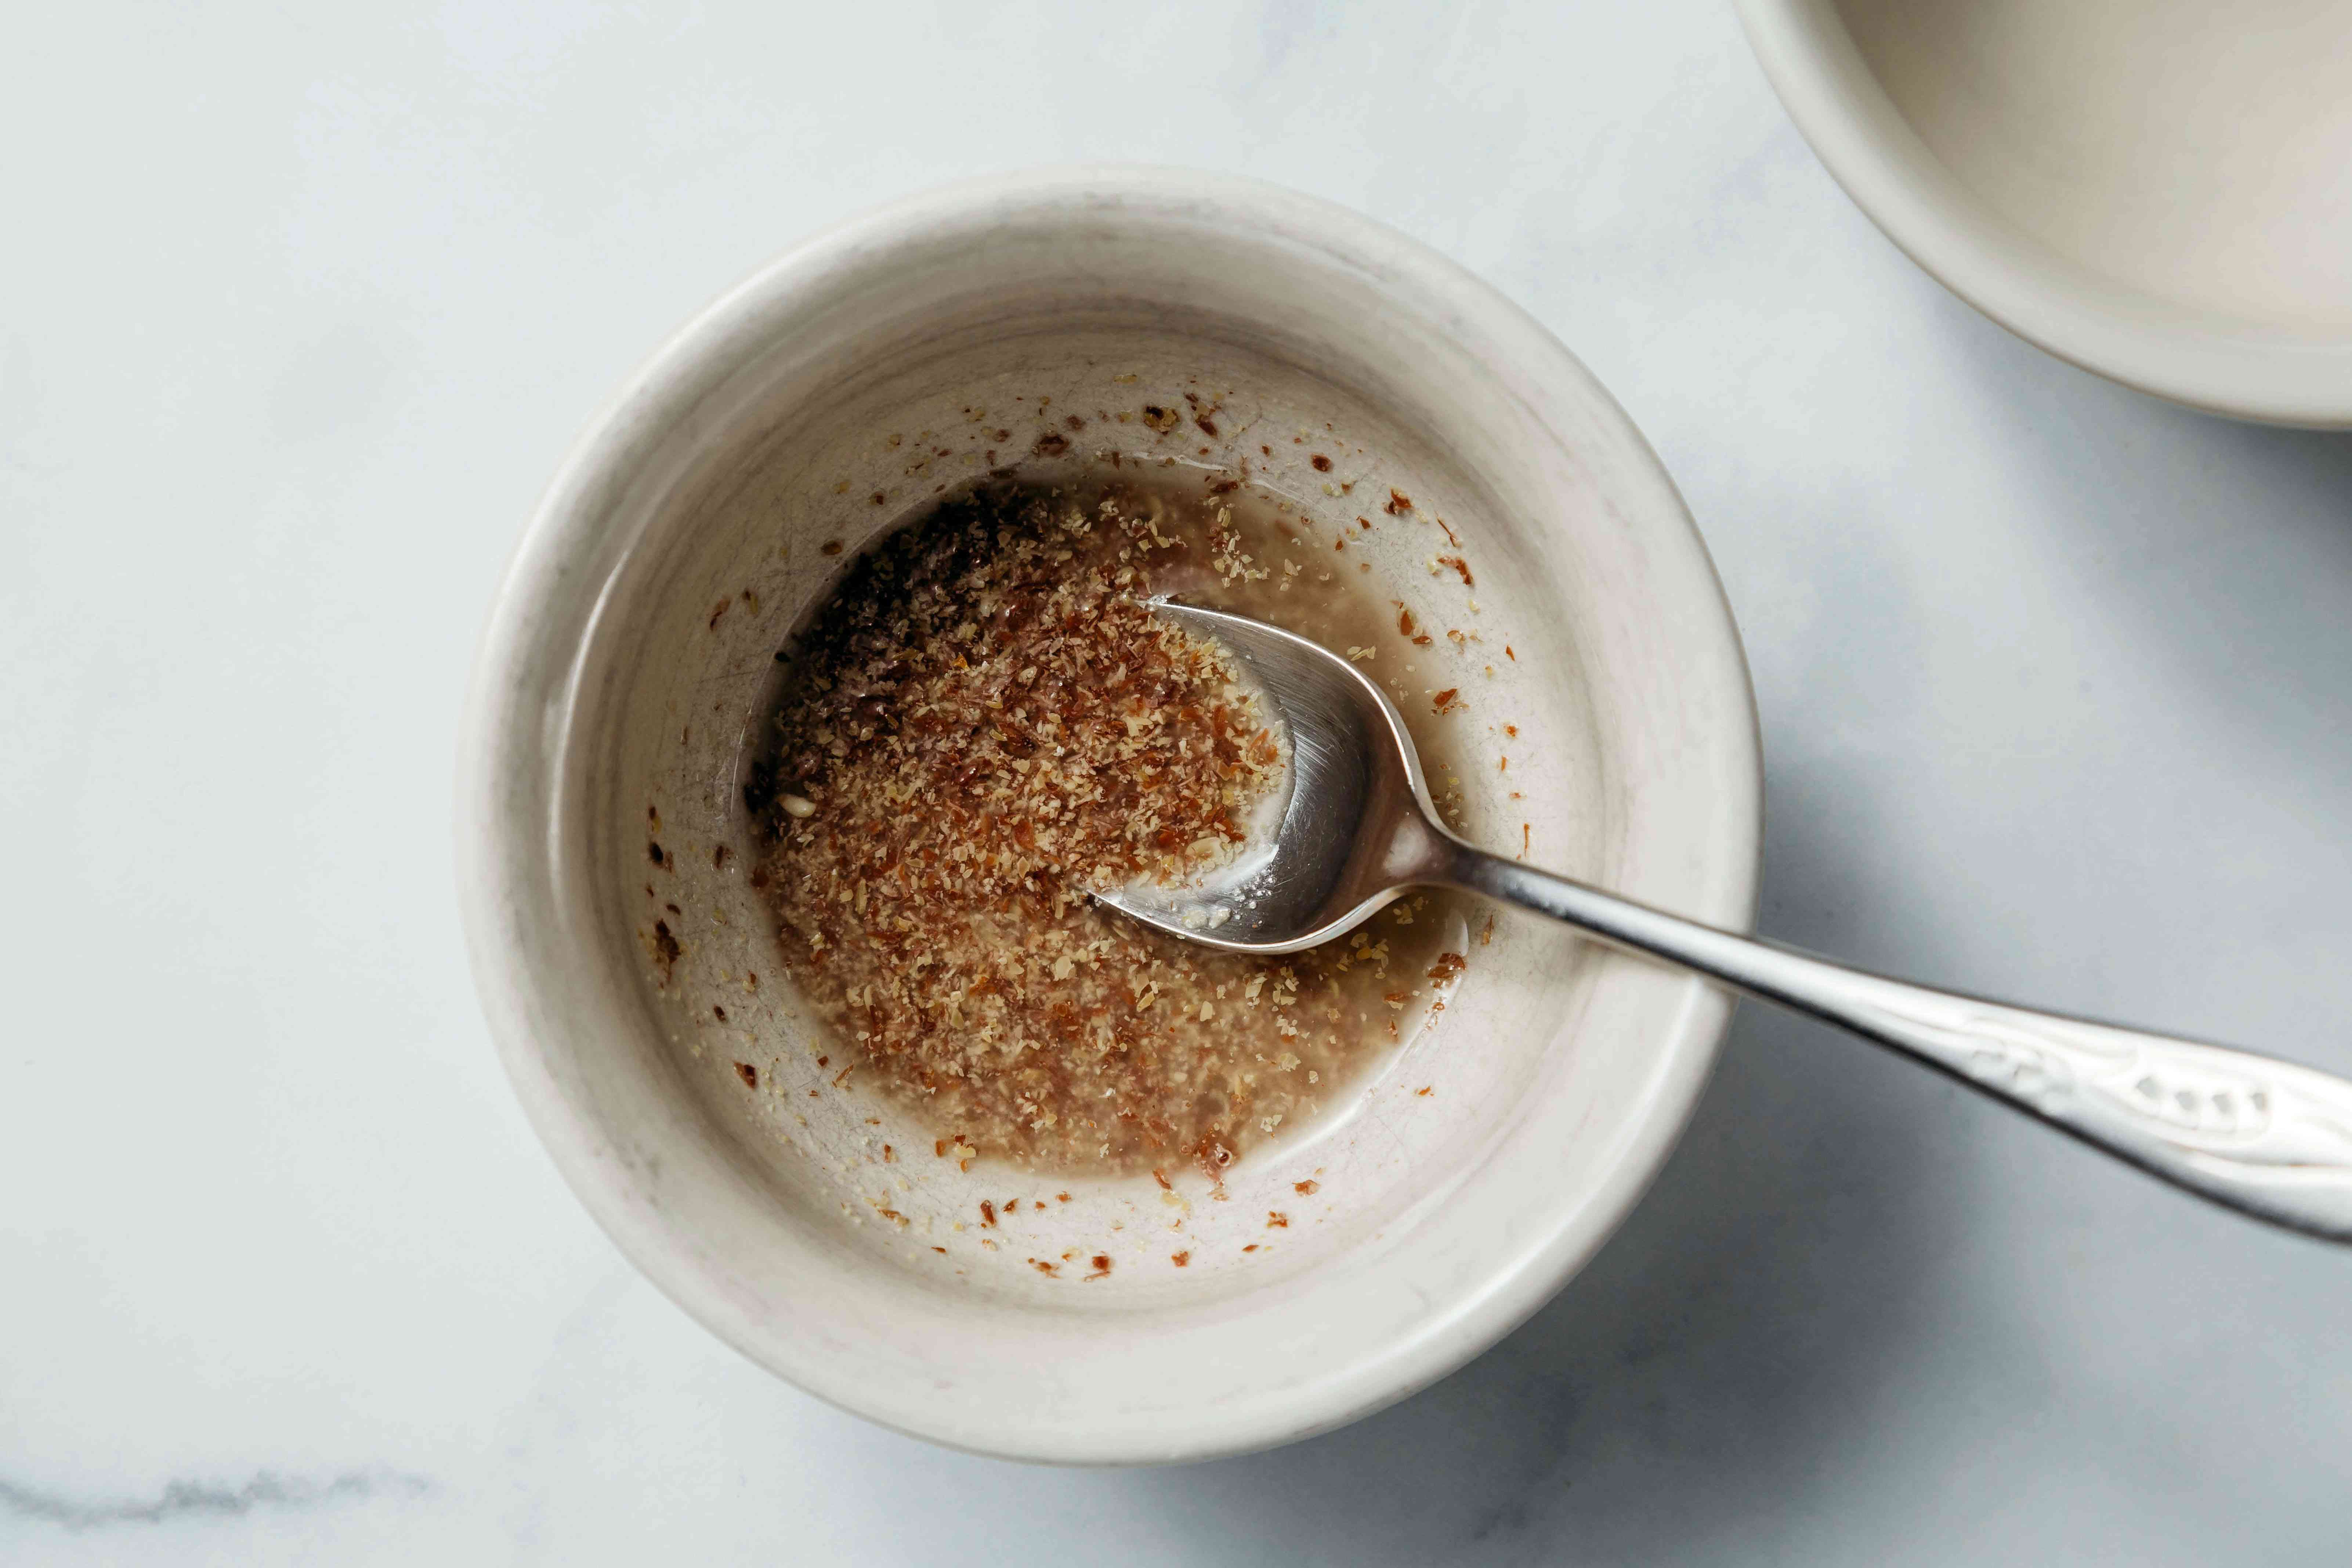 Put the ground flaxseed in a small bowl and add the boiling water